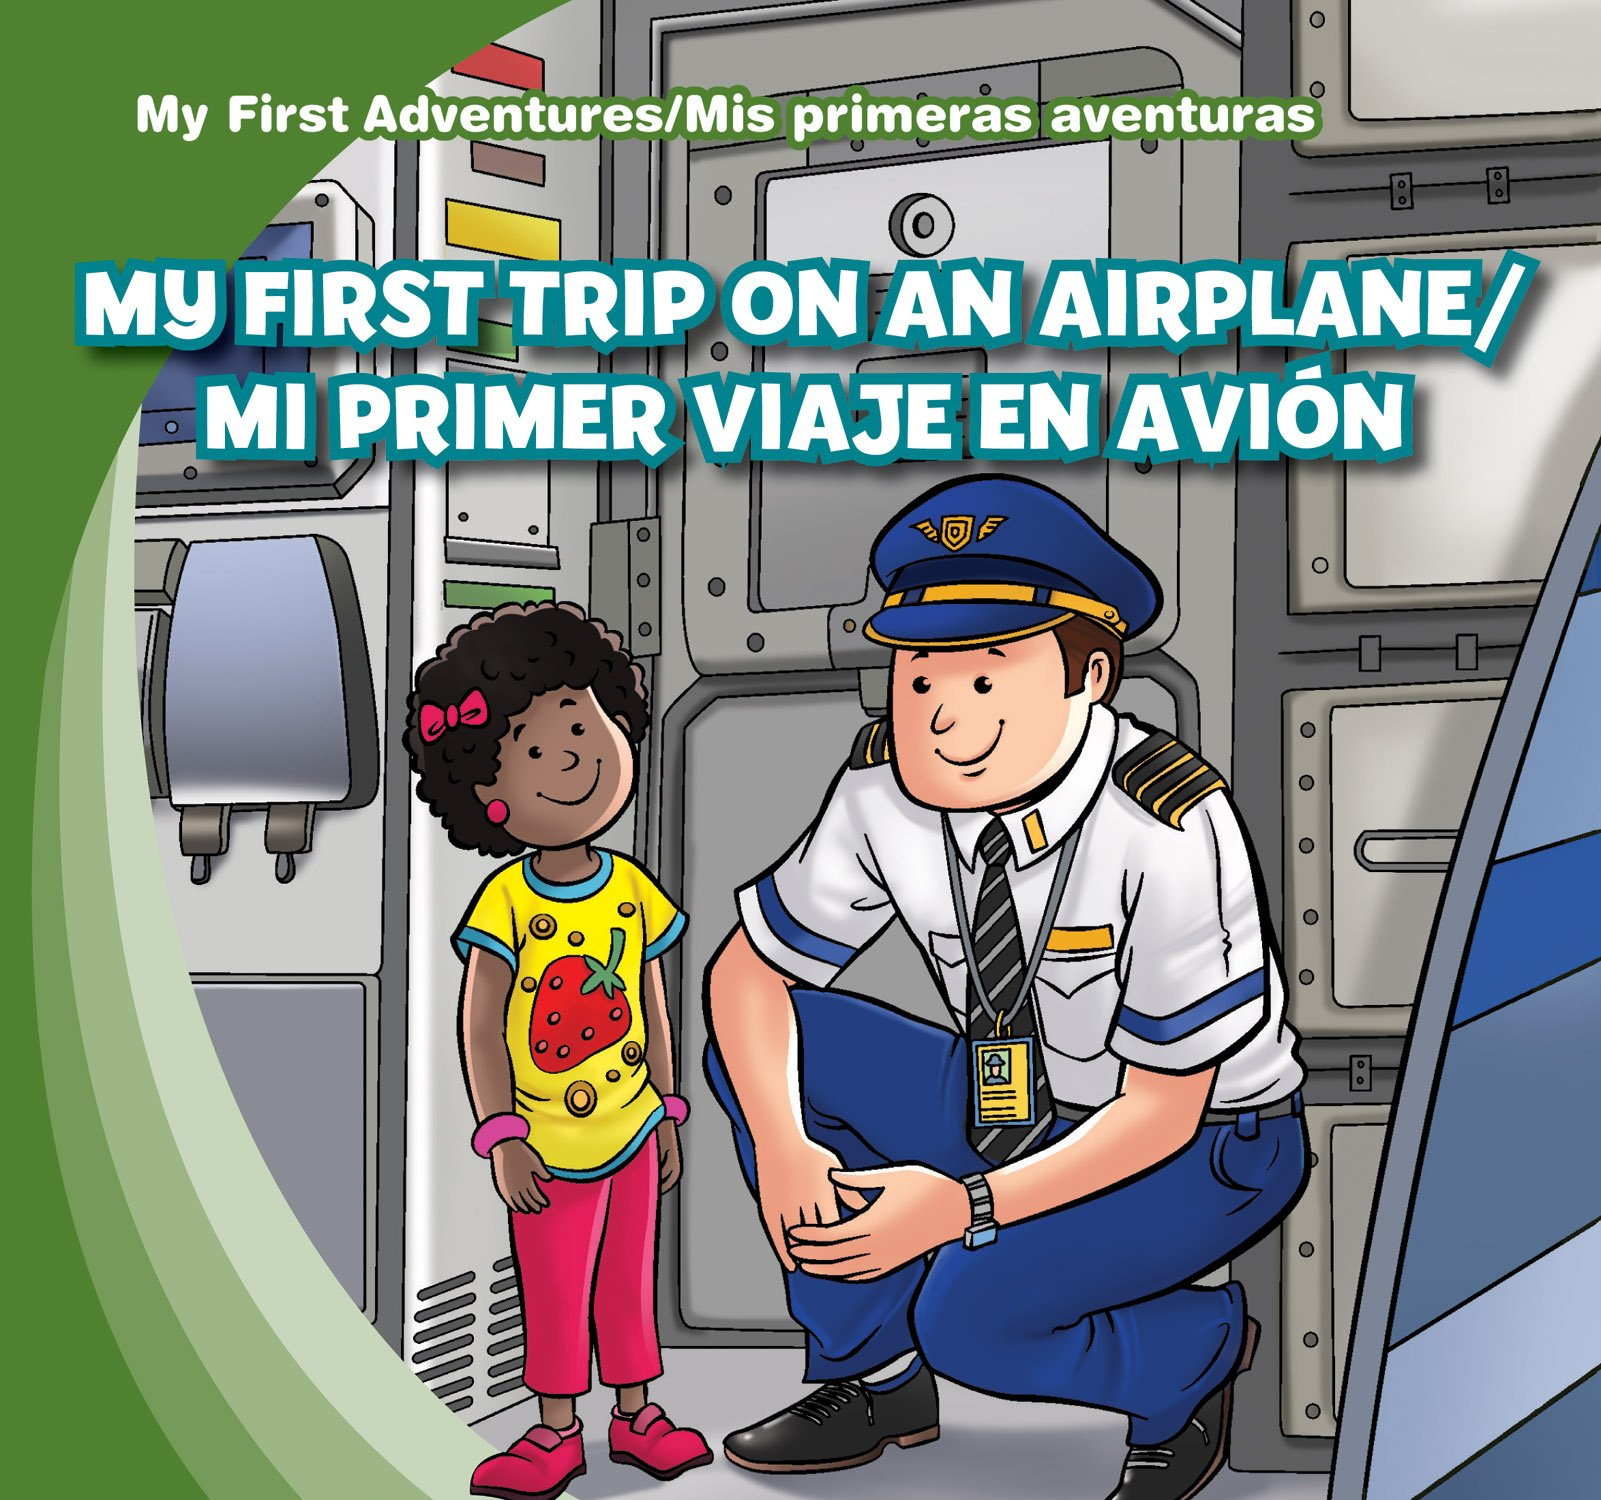 My First Trip on an Airplane/Mi primer viaje en avion (My First Adventures/Mis primeras aventuras) (English and Spanish Edition)